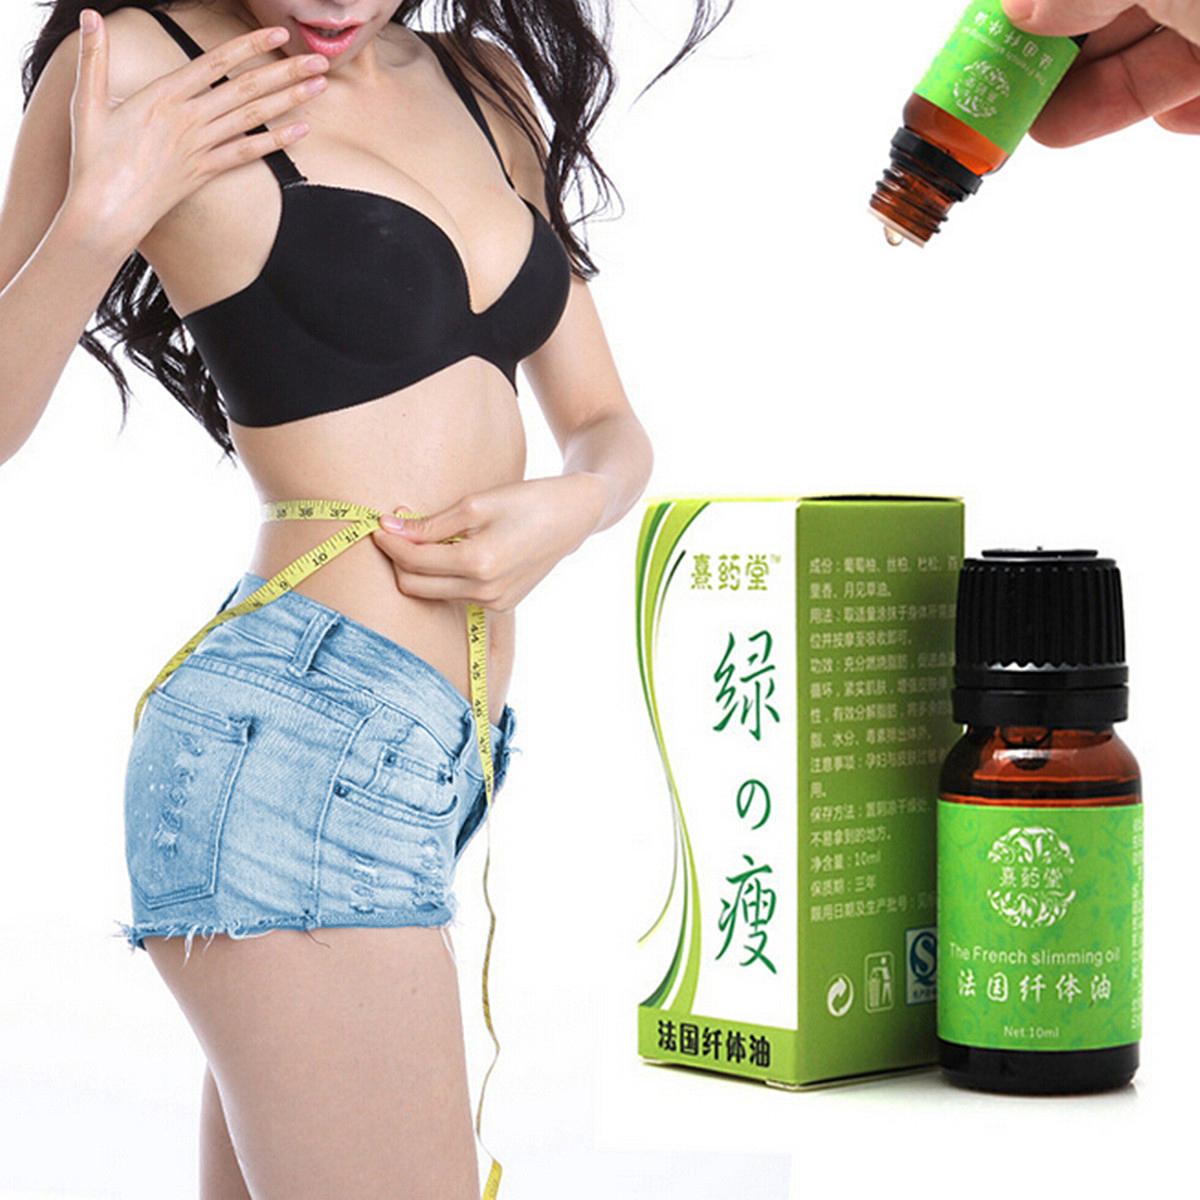 Cellulite Massage Essential Oil Promote Fat Burn Thin Waist Stovepipe Body Firming Skin Treatment Lift Beauty